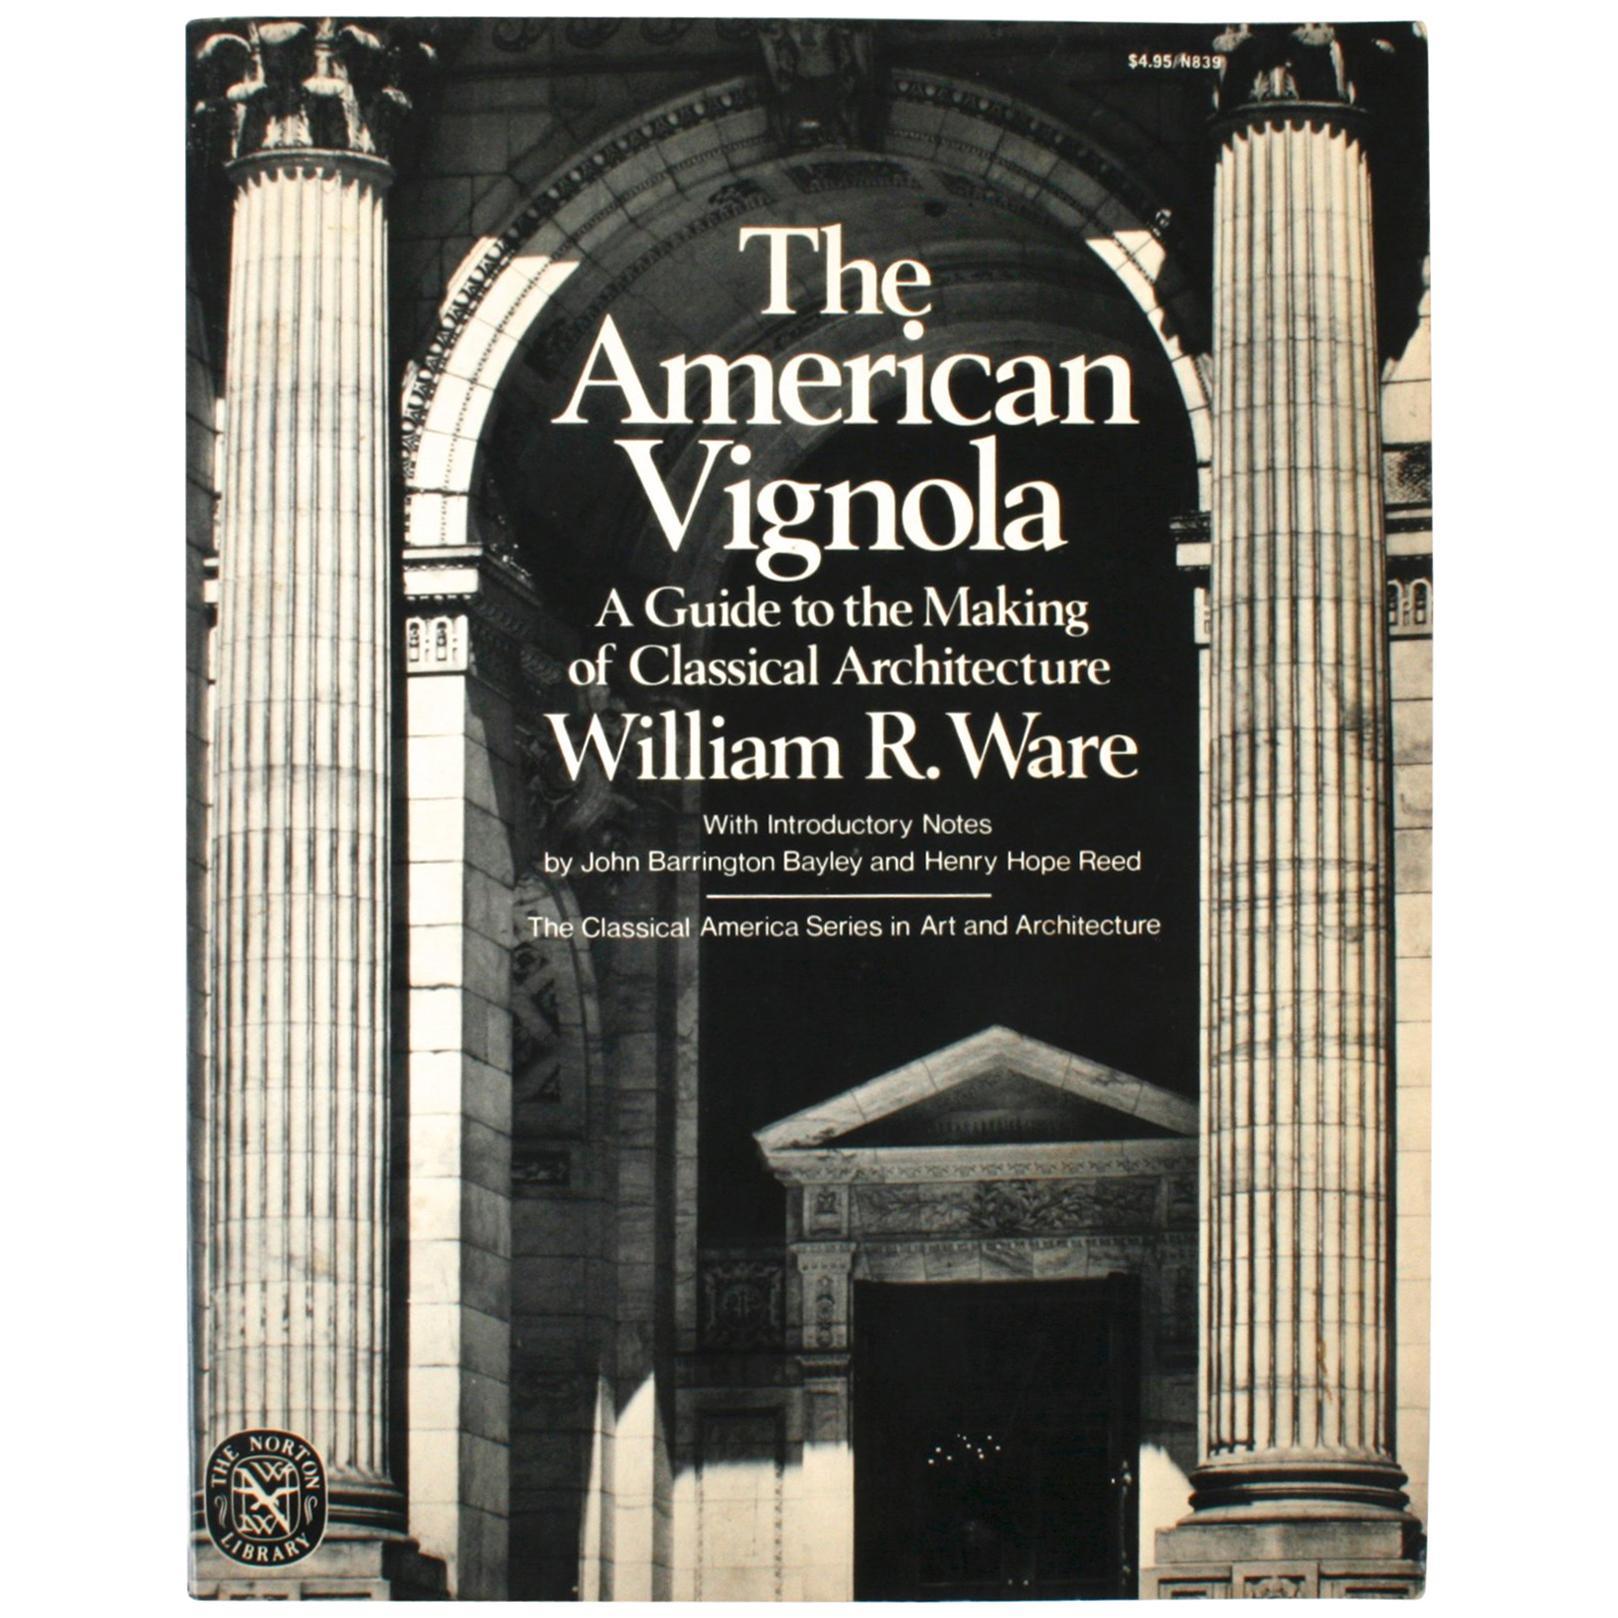 American Vignola by William R. Ware, First Edition Thus